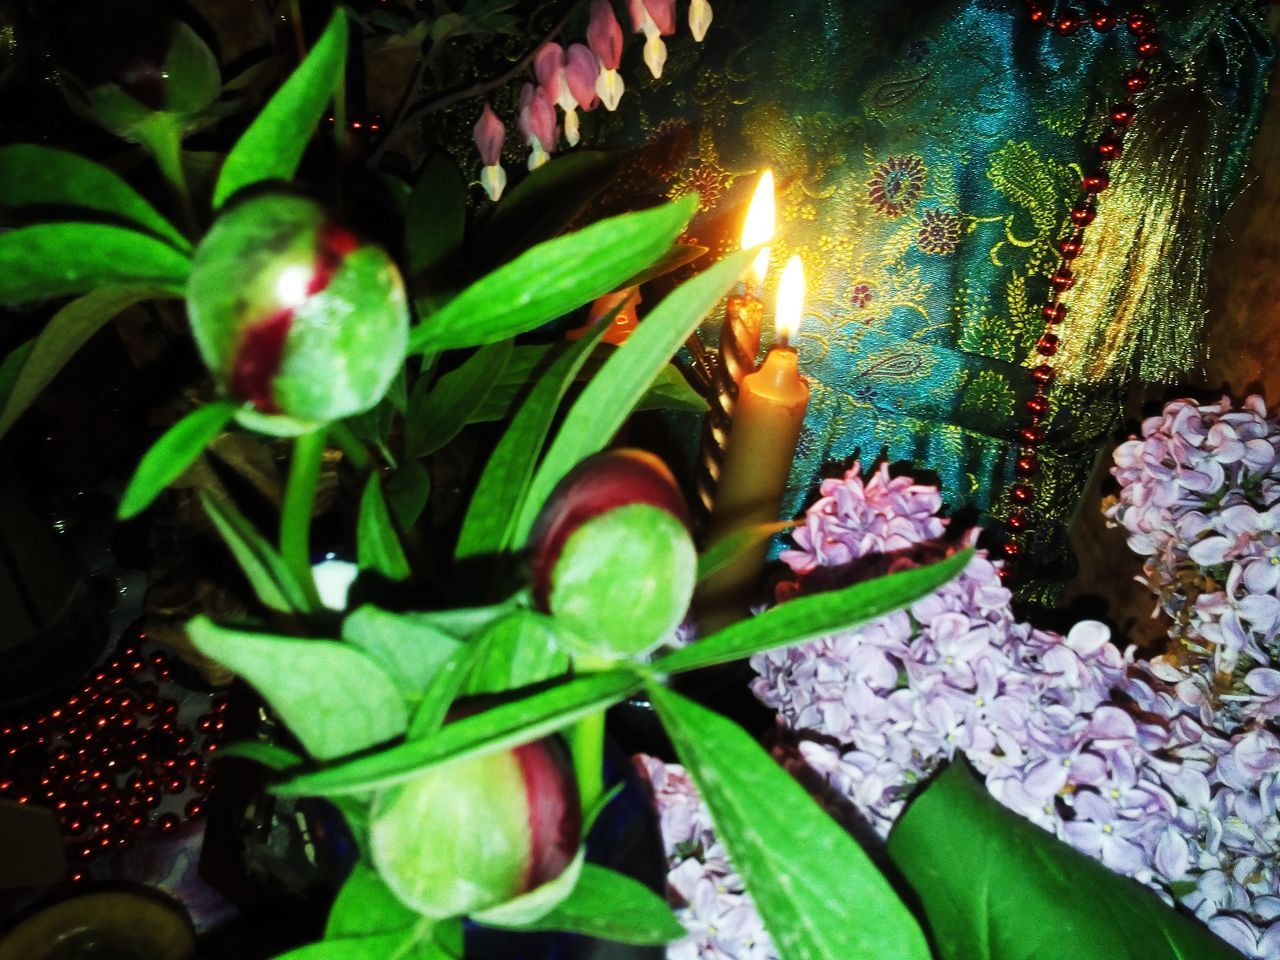 HIGH ANGLE VIEW OF ILLUMINATED PLANT